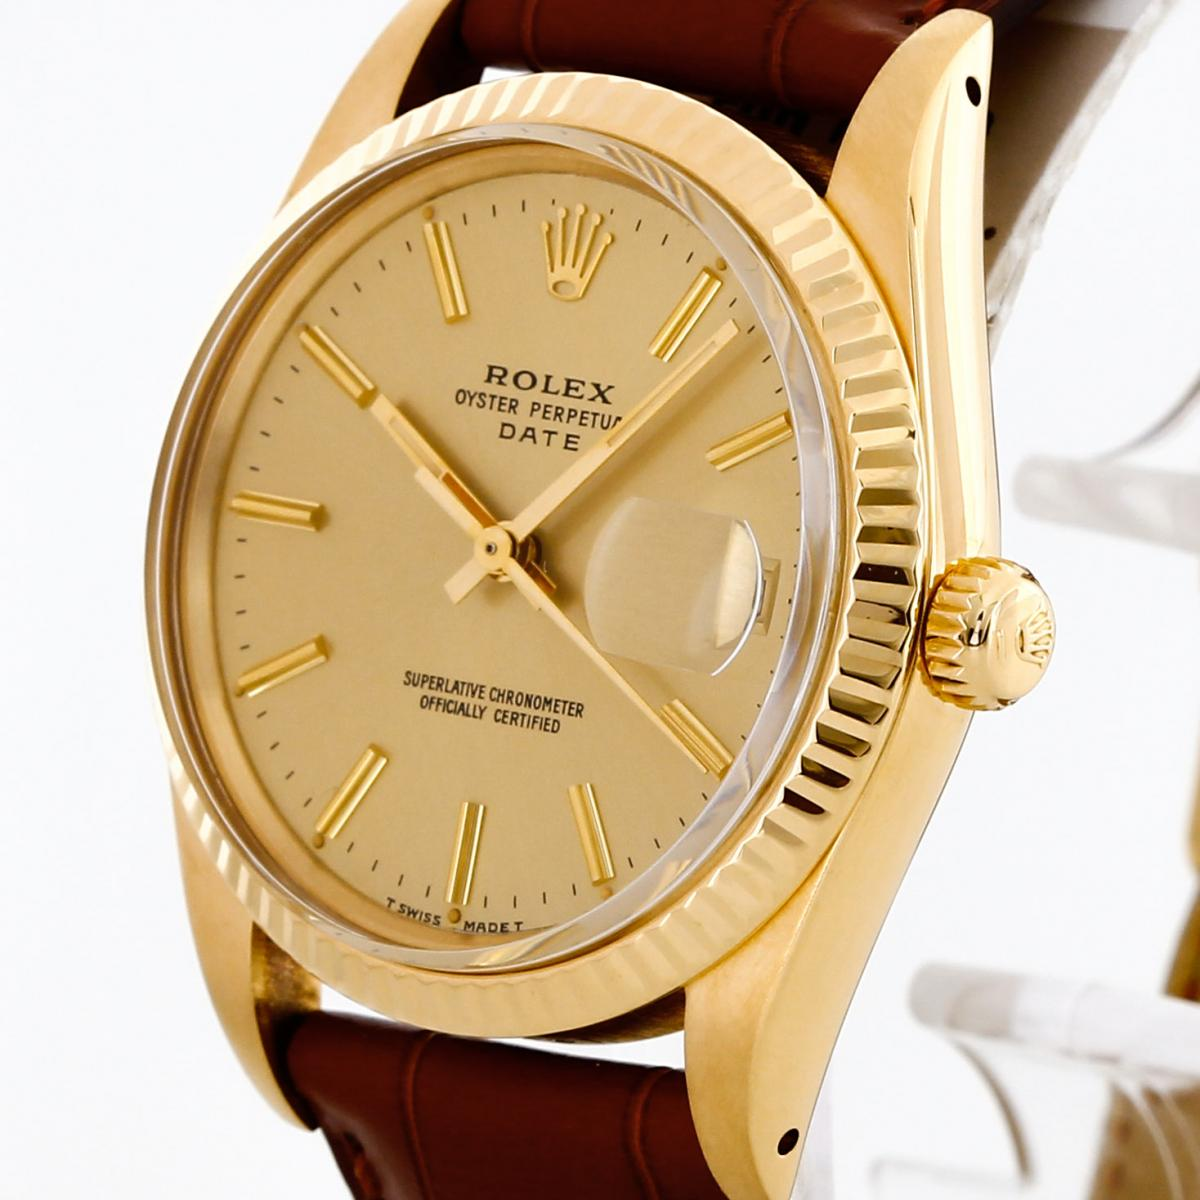 Rolex Oyster Perpetual Date 18 K Gelbgold an Lederband Ref. 15038